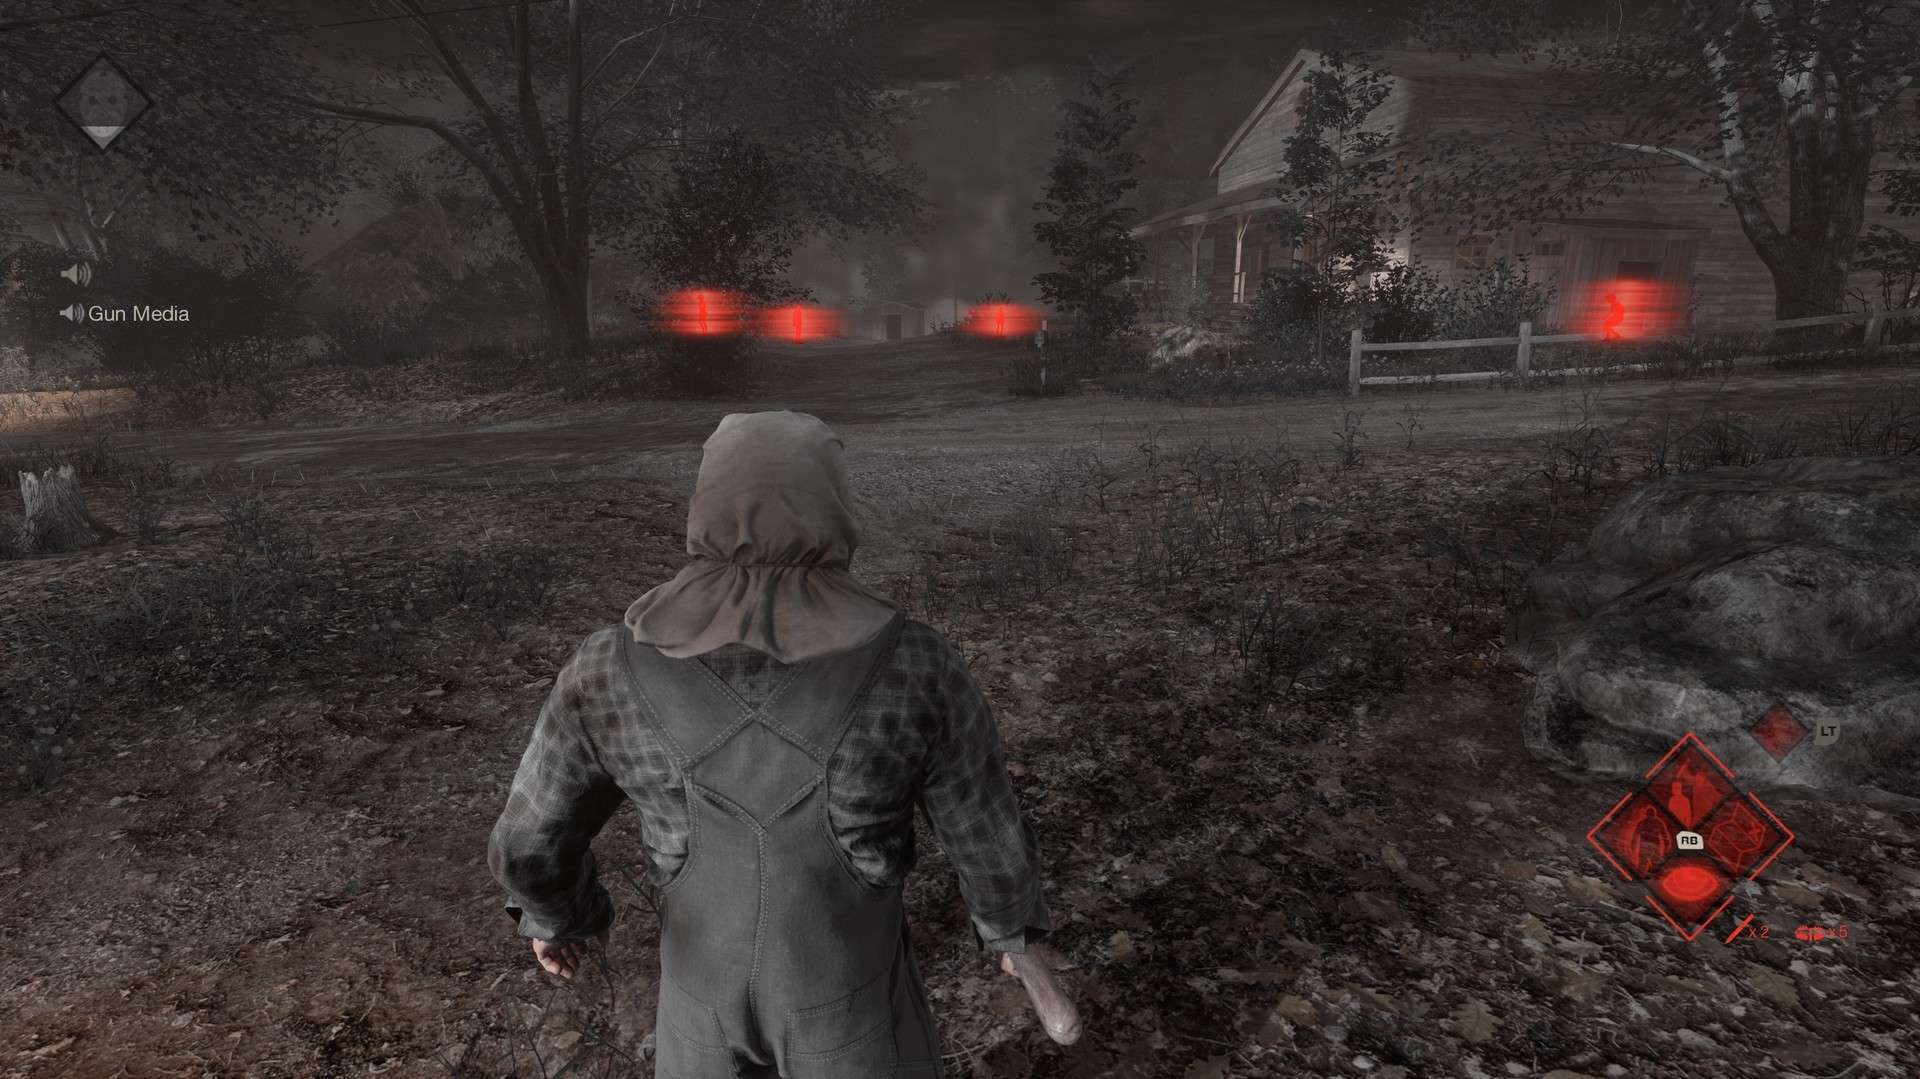 Image result for jason hunting someone friday the 13th